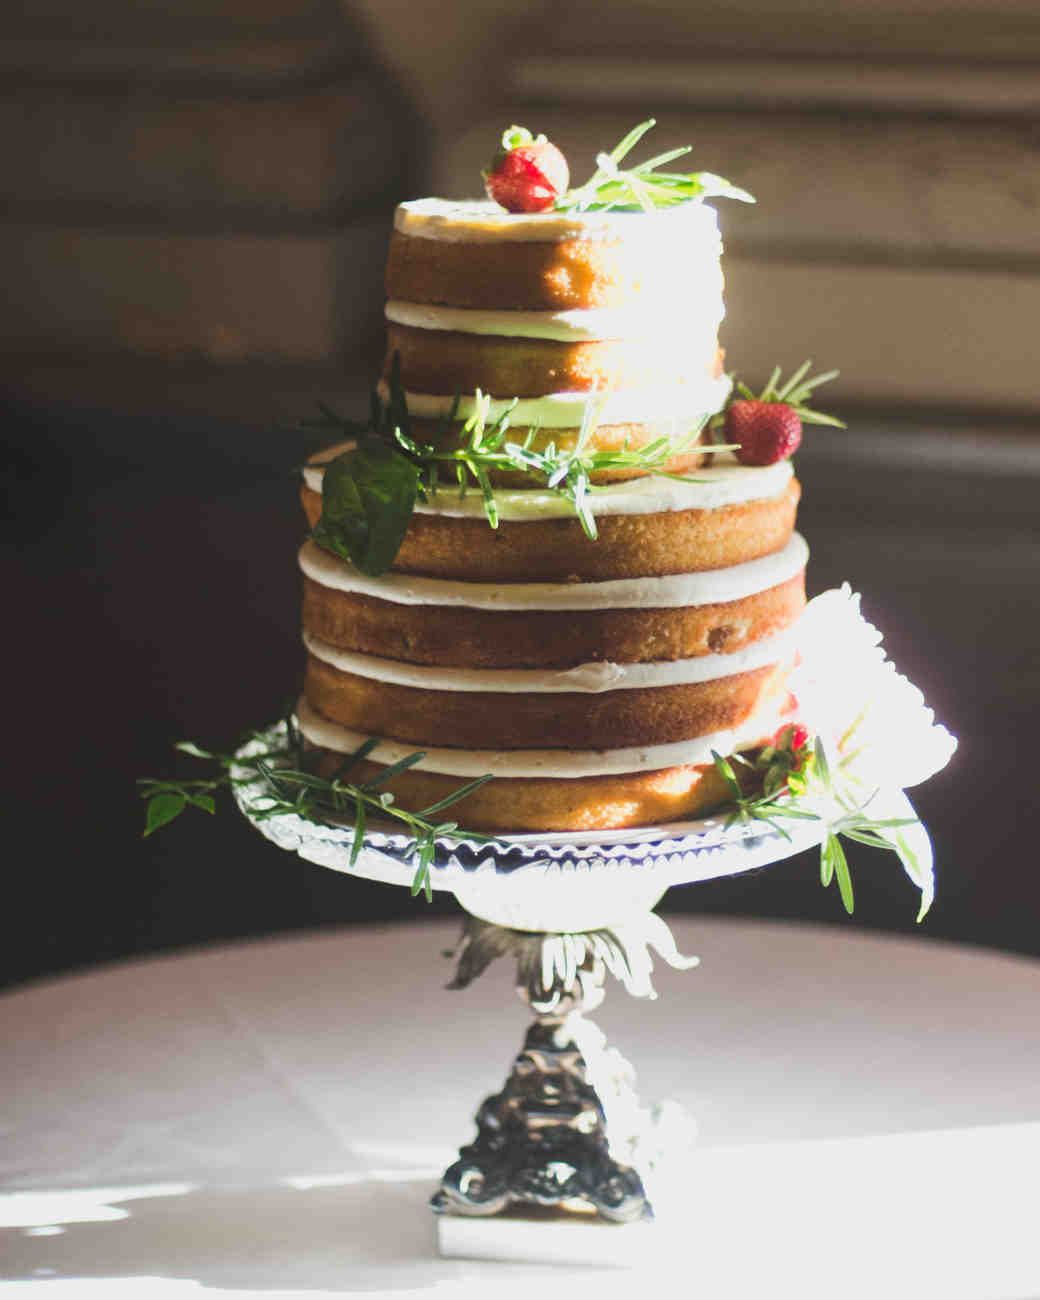 Sweet And Simple Naked Wedding Cakes: 8 Wedding Cake Flavors You Haven't Tried Yet